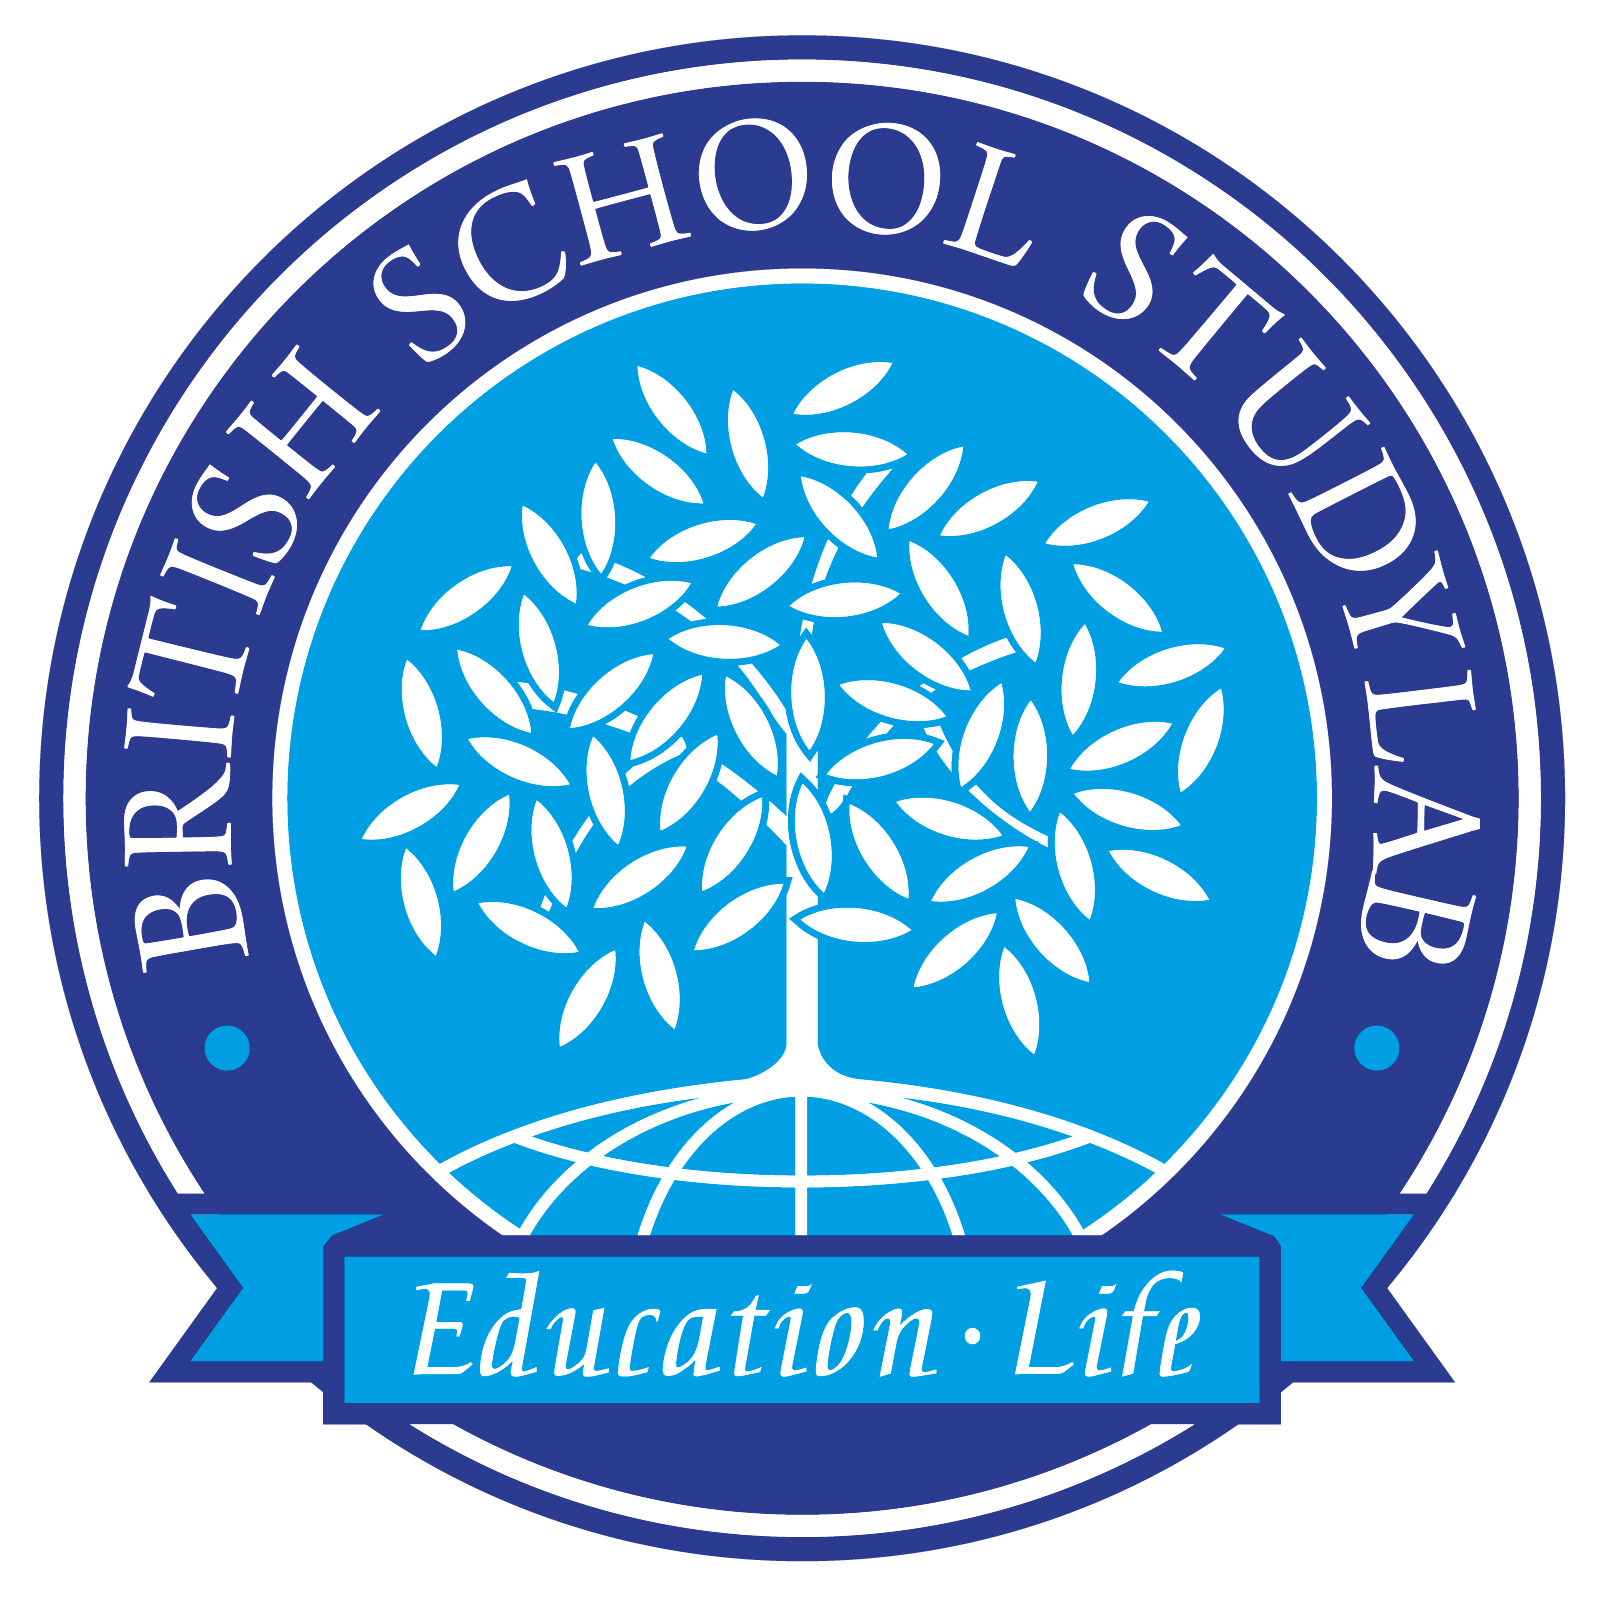 logo_british school studylab-01-01-01.jpg (1006 KB)